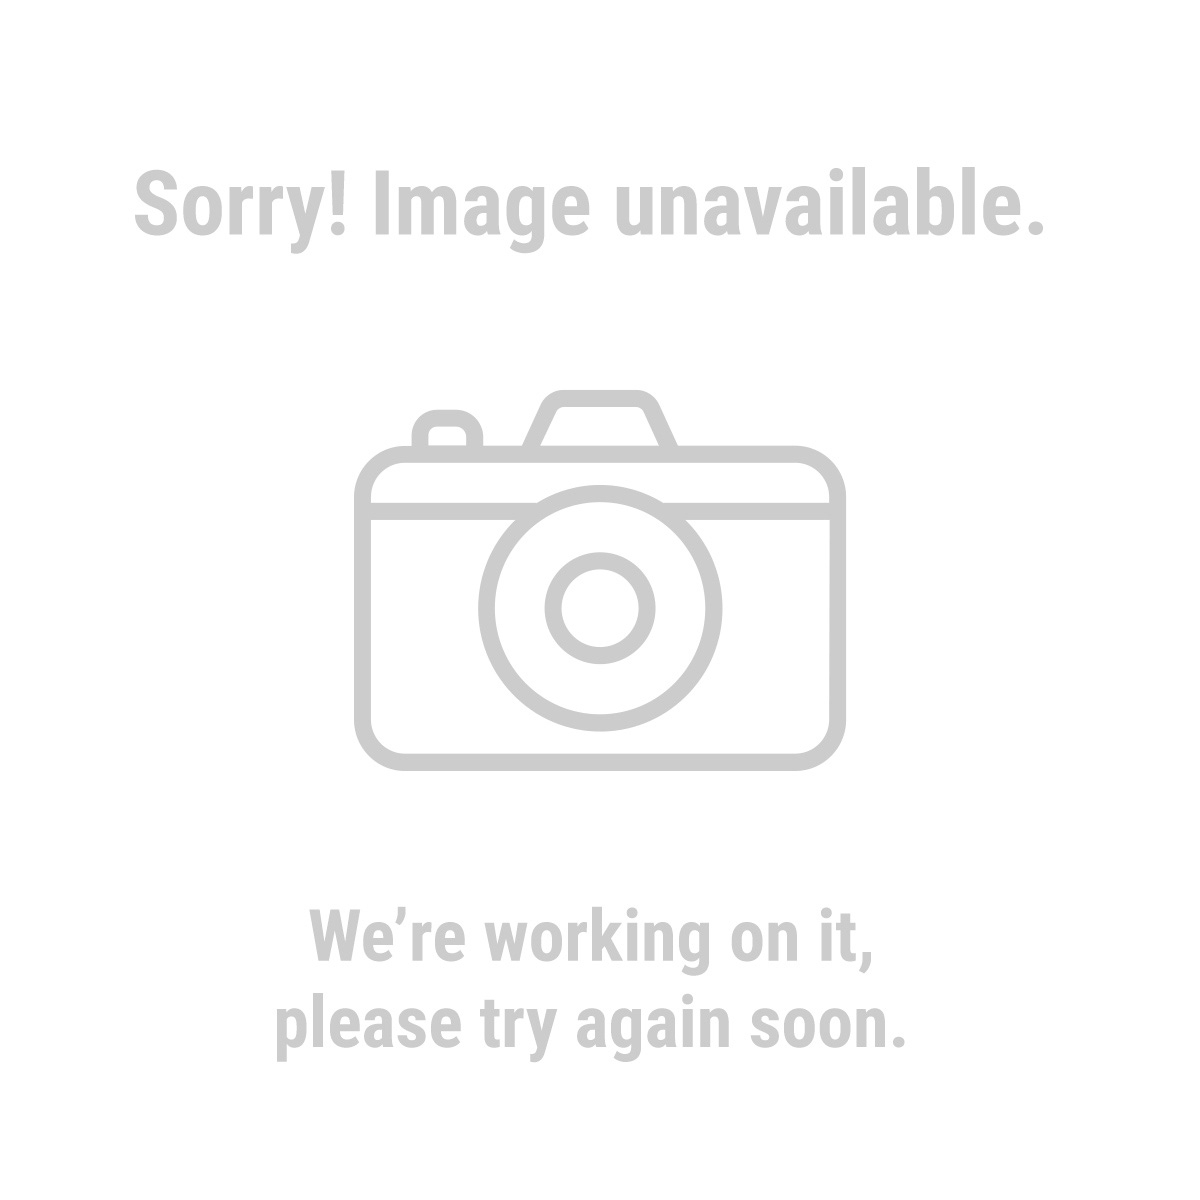 Warrior 61621 Titanium Nitride High Speed Steel Drill Bits,  Piece